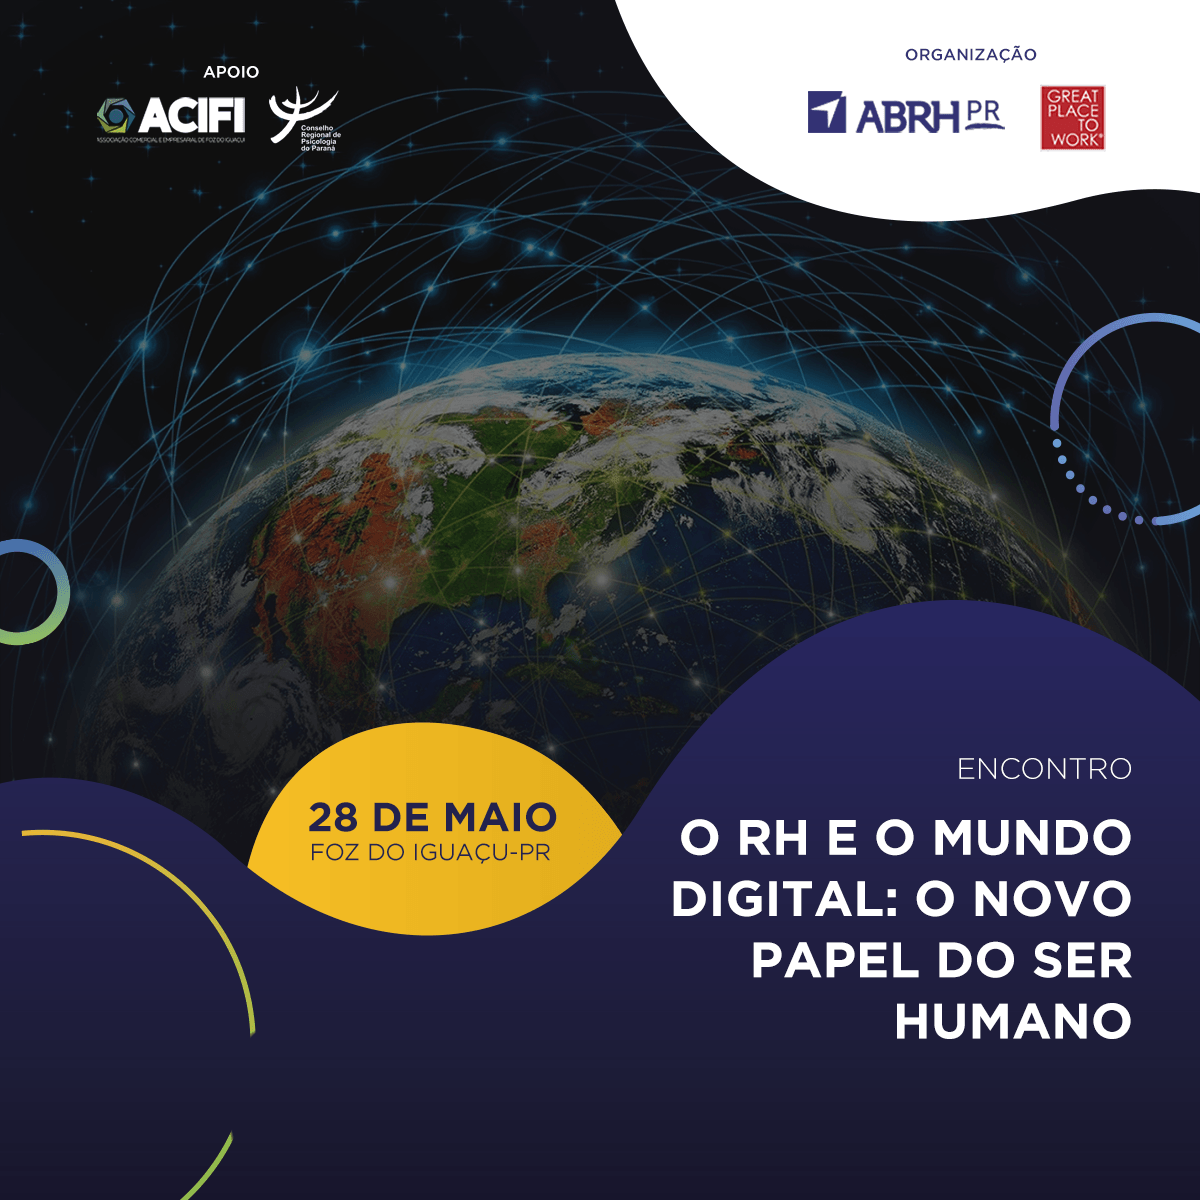 O RH e o Mundo Digital: o novo papel do ser humano